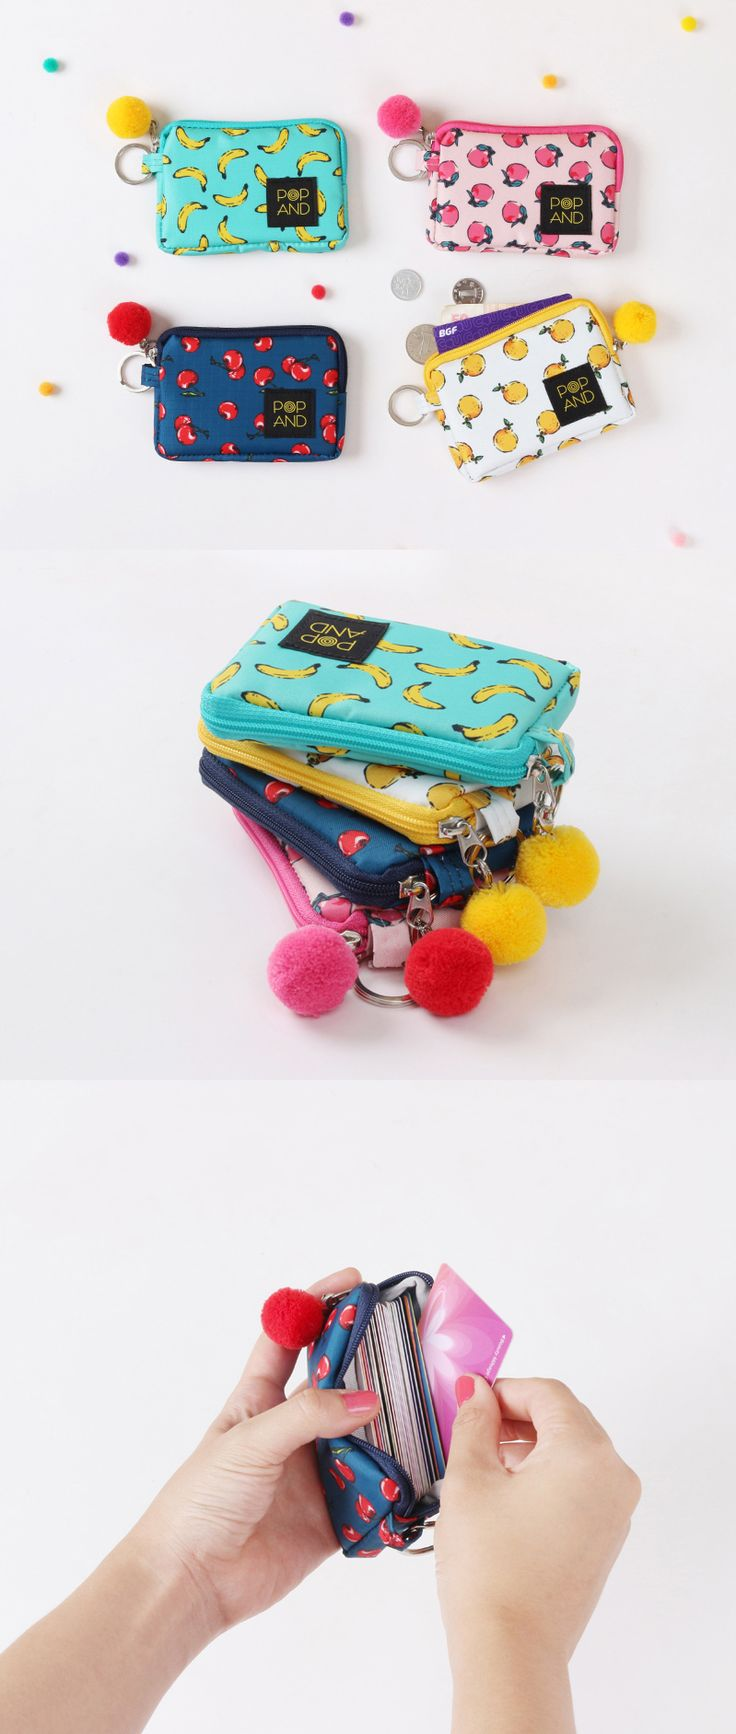 Are you like me, not wanting to carry excessive number of items but your cash and necessary cards? This pouch is perfect for us! Adorably designed pouch with vibrant cover, made to hold many of your cards and cash!!